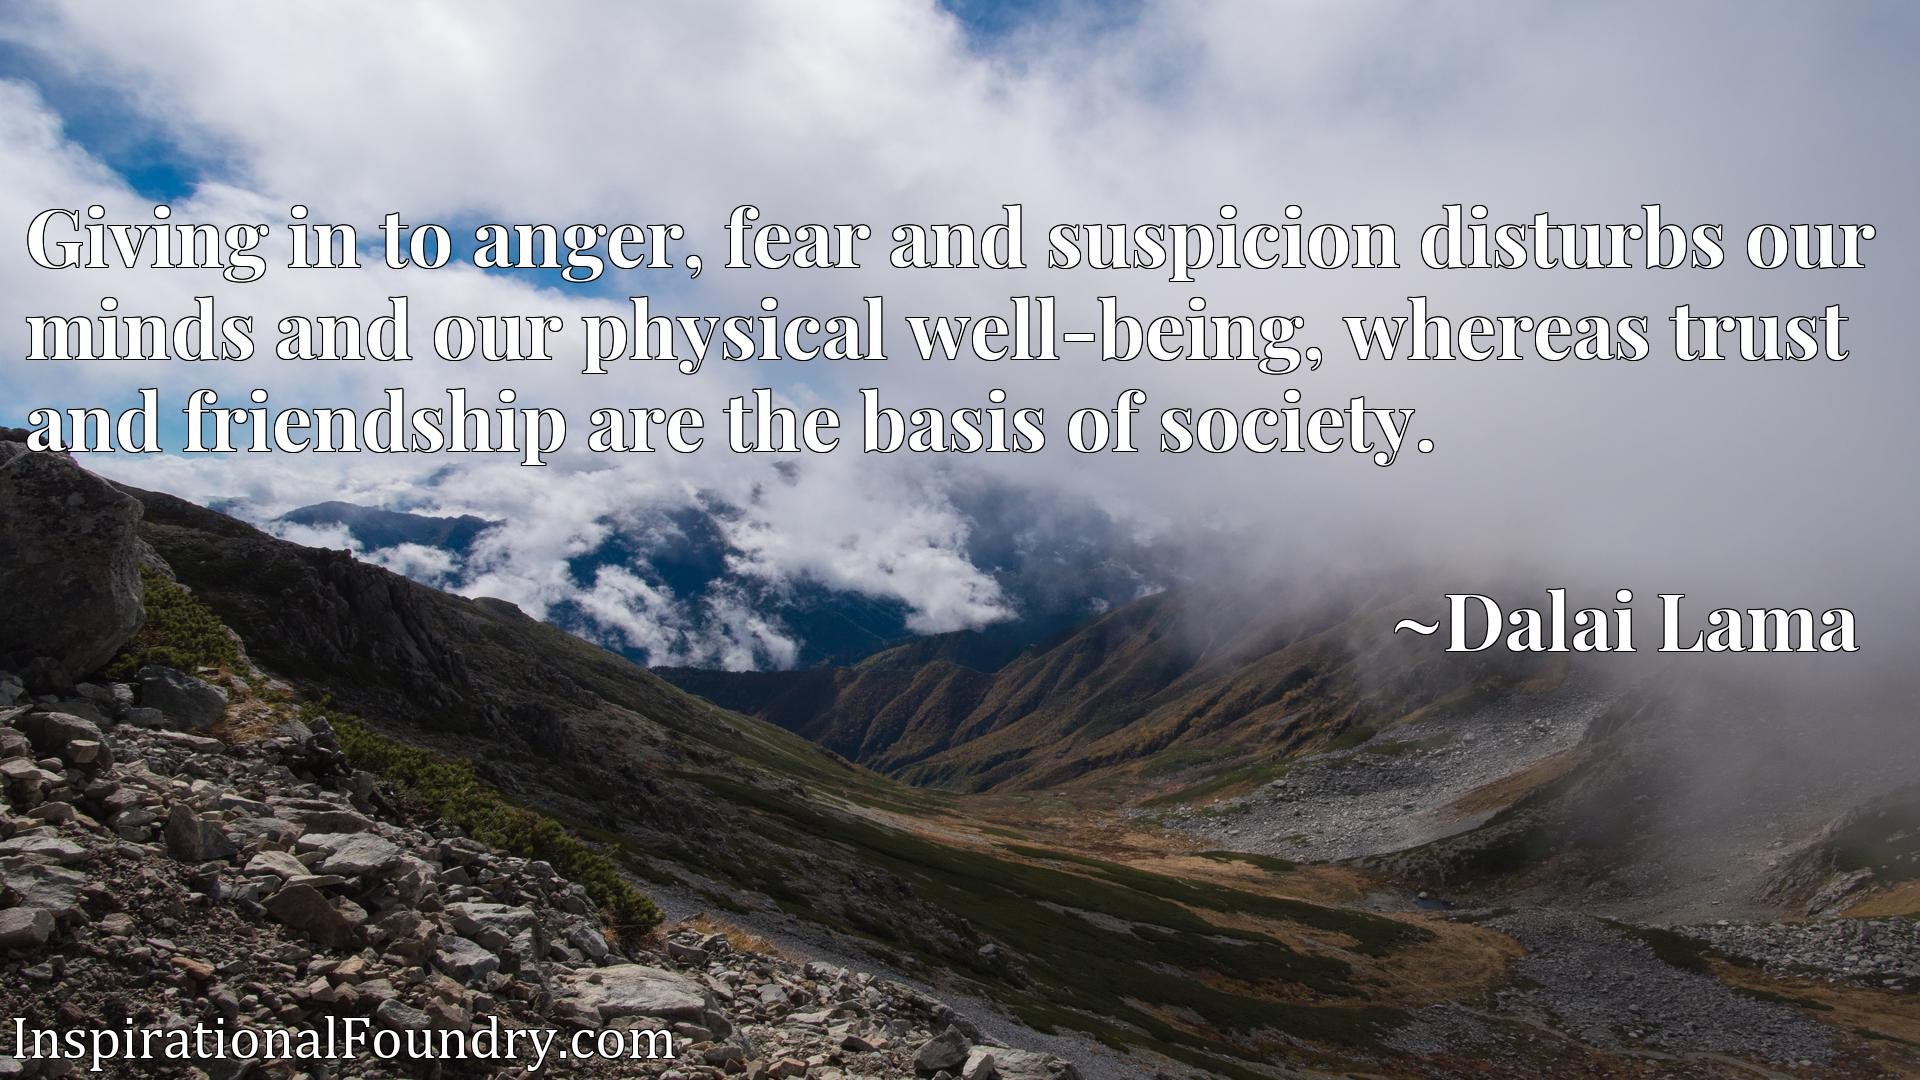 Giving in to anger, fear and suspicion disturbs our minds and our physical well-being, whereas trust and friendship are the basis of society.